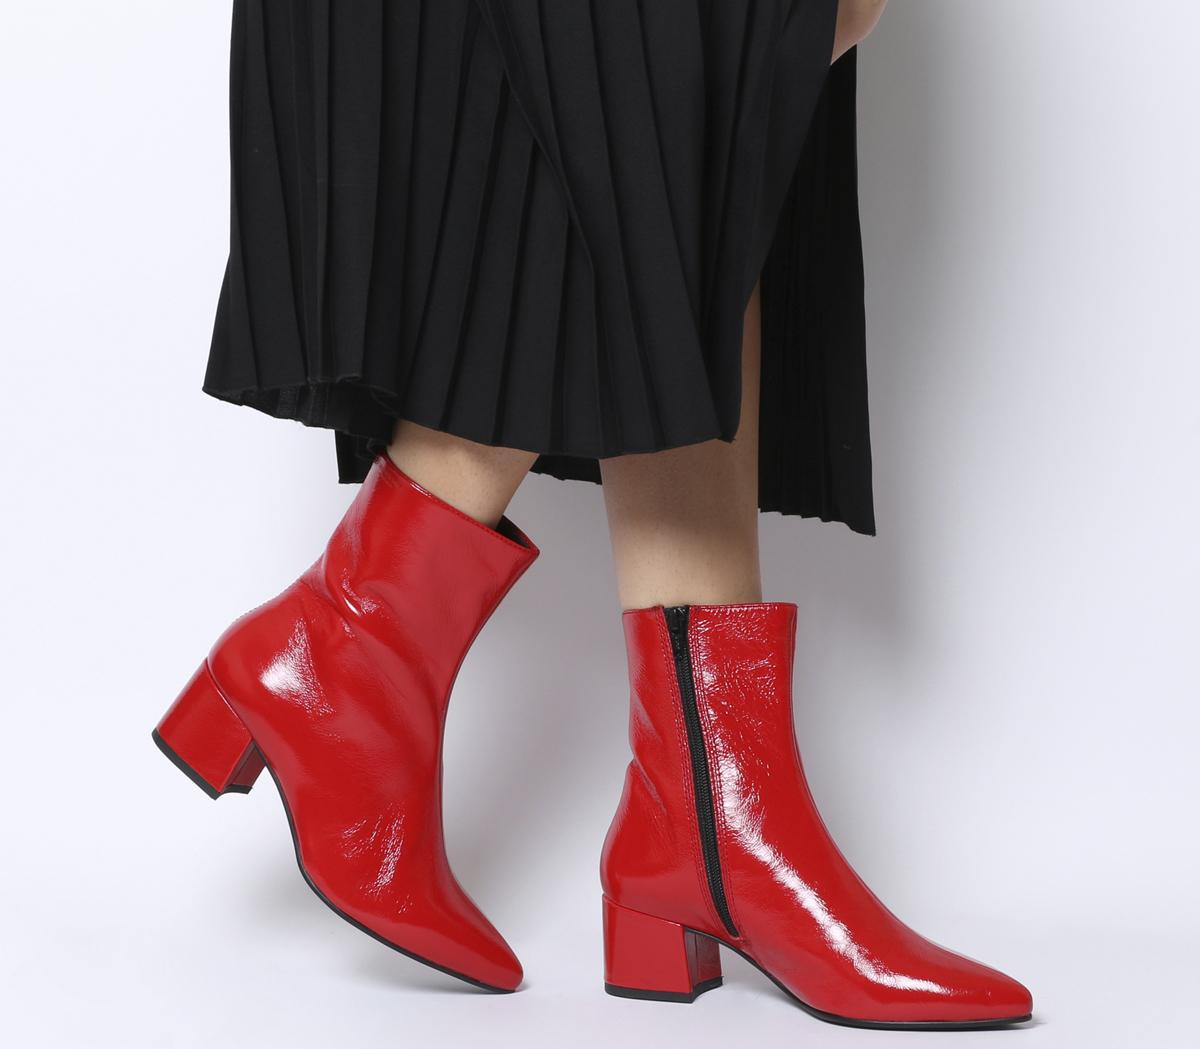 Vagabond Mya Mid Ankle Boots Red Patent